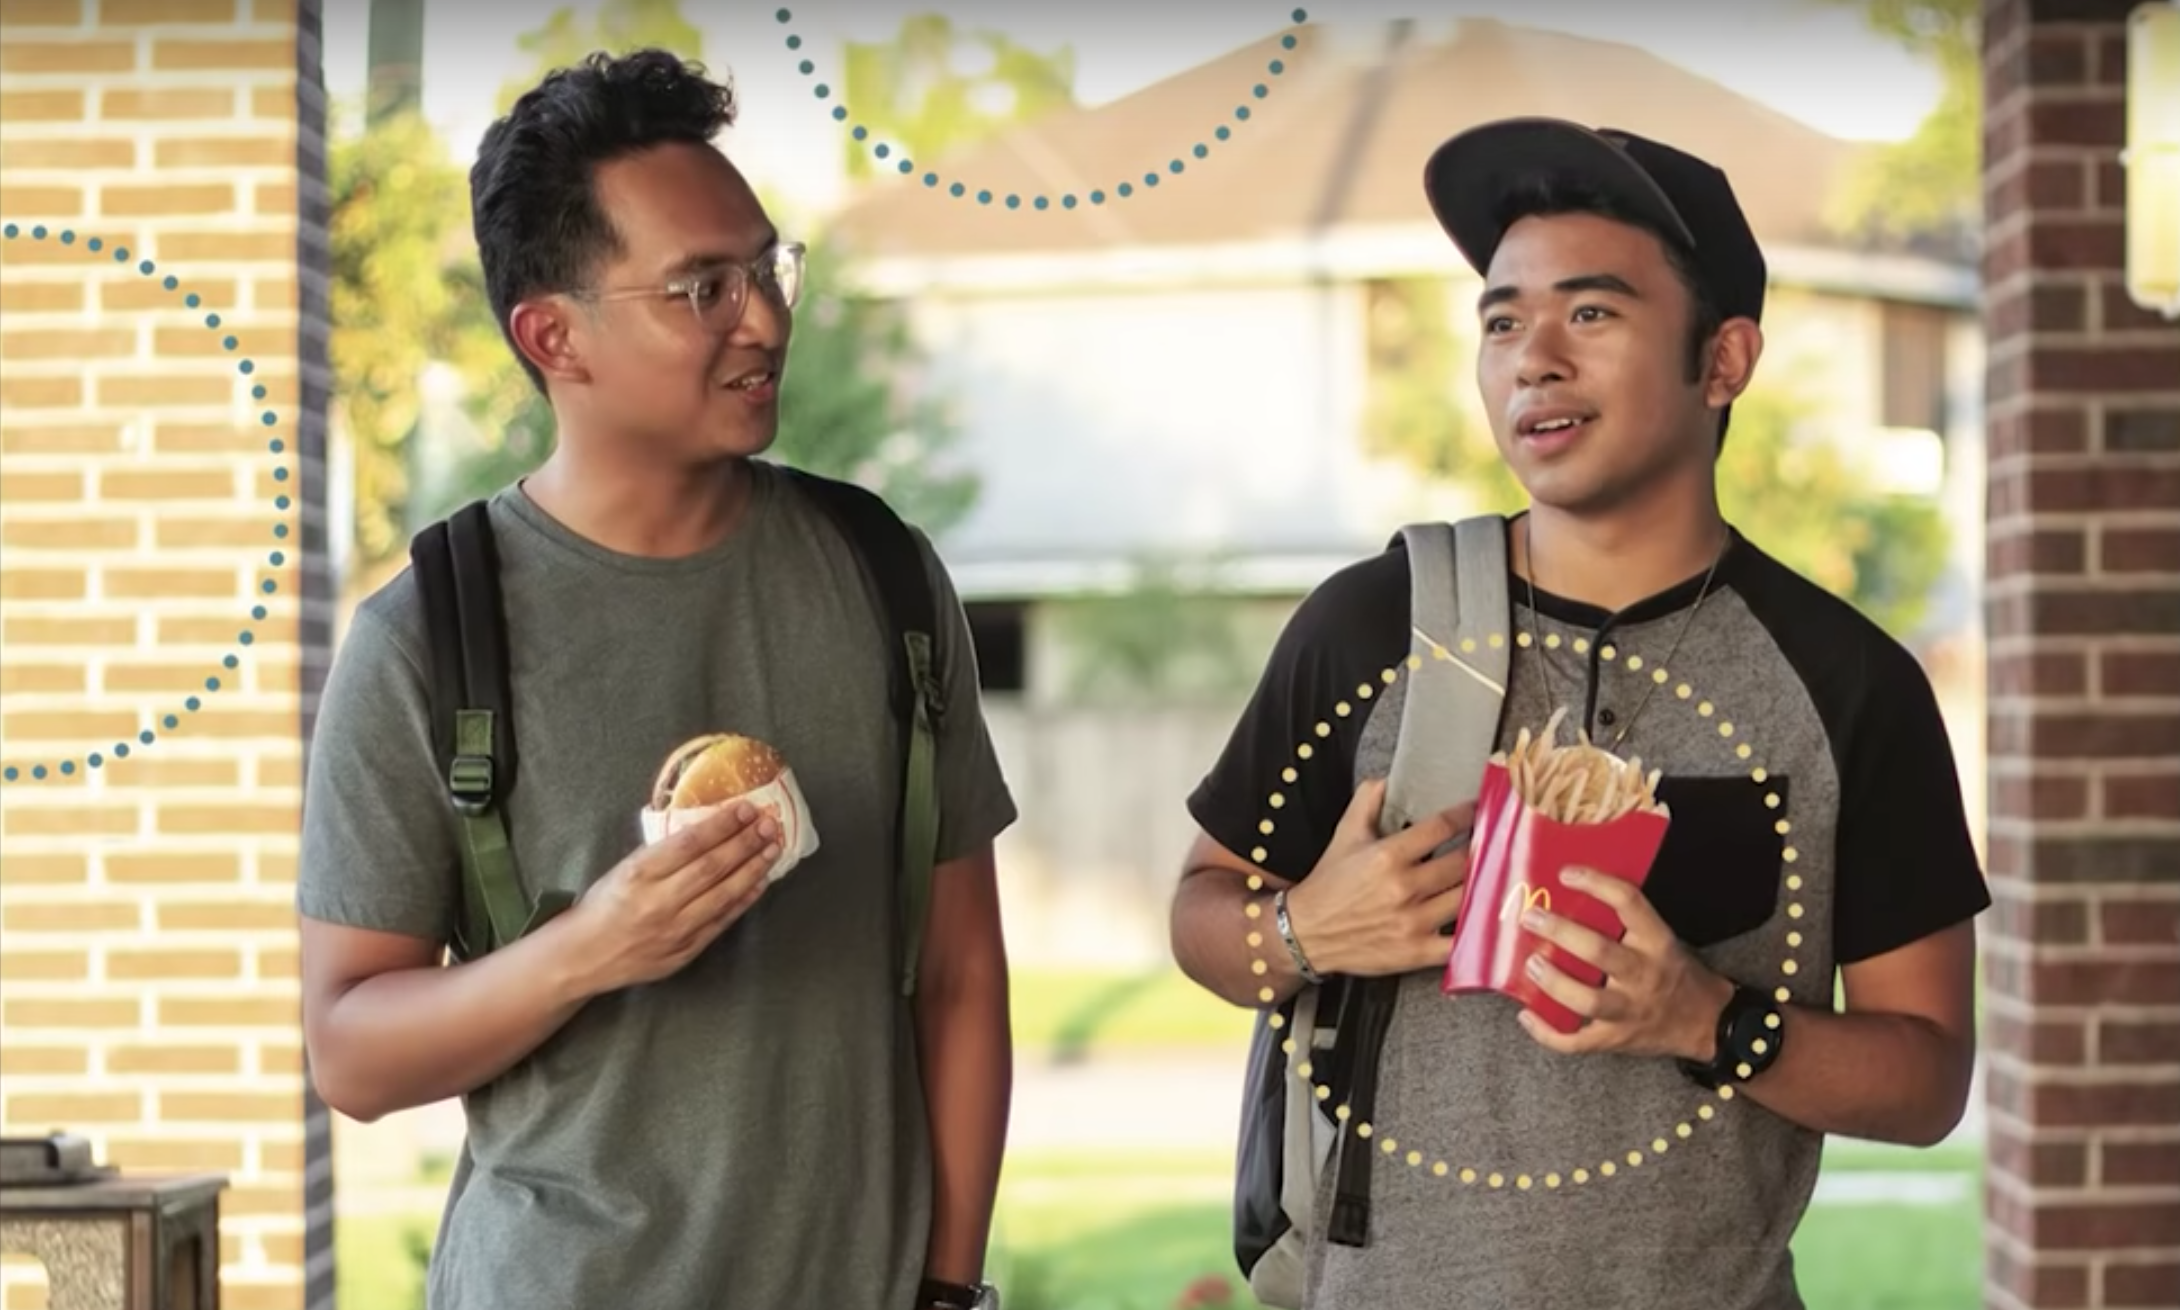 McDonald's Tricked Into Being More Diverse On The Viral List